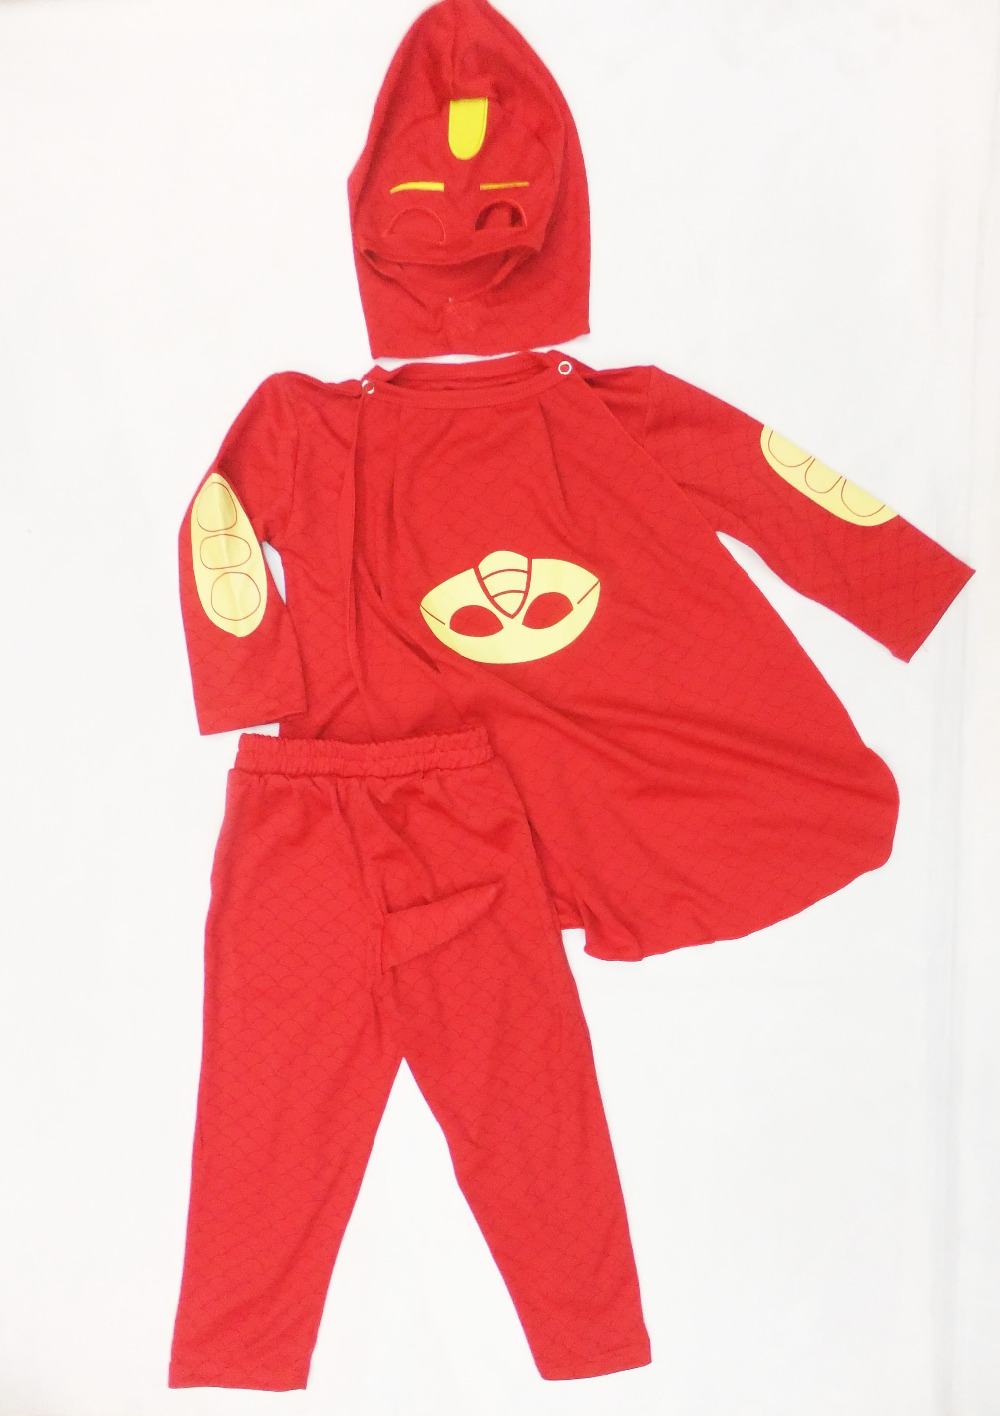 wholesale&-Halloween costumes Children's Christmas clothing green Role playing/Boy spider-man Cosplay Coat&pants&mask